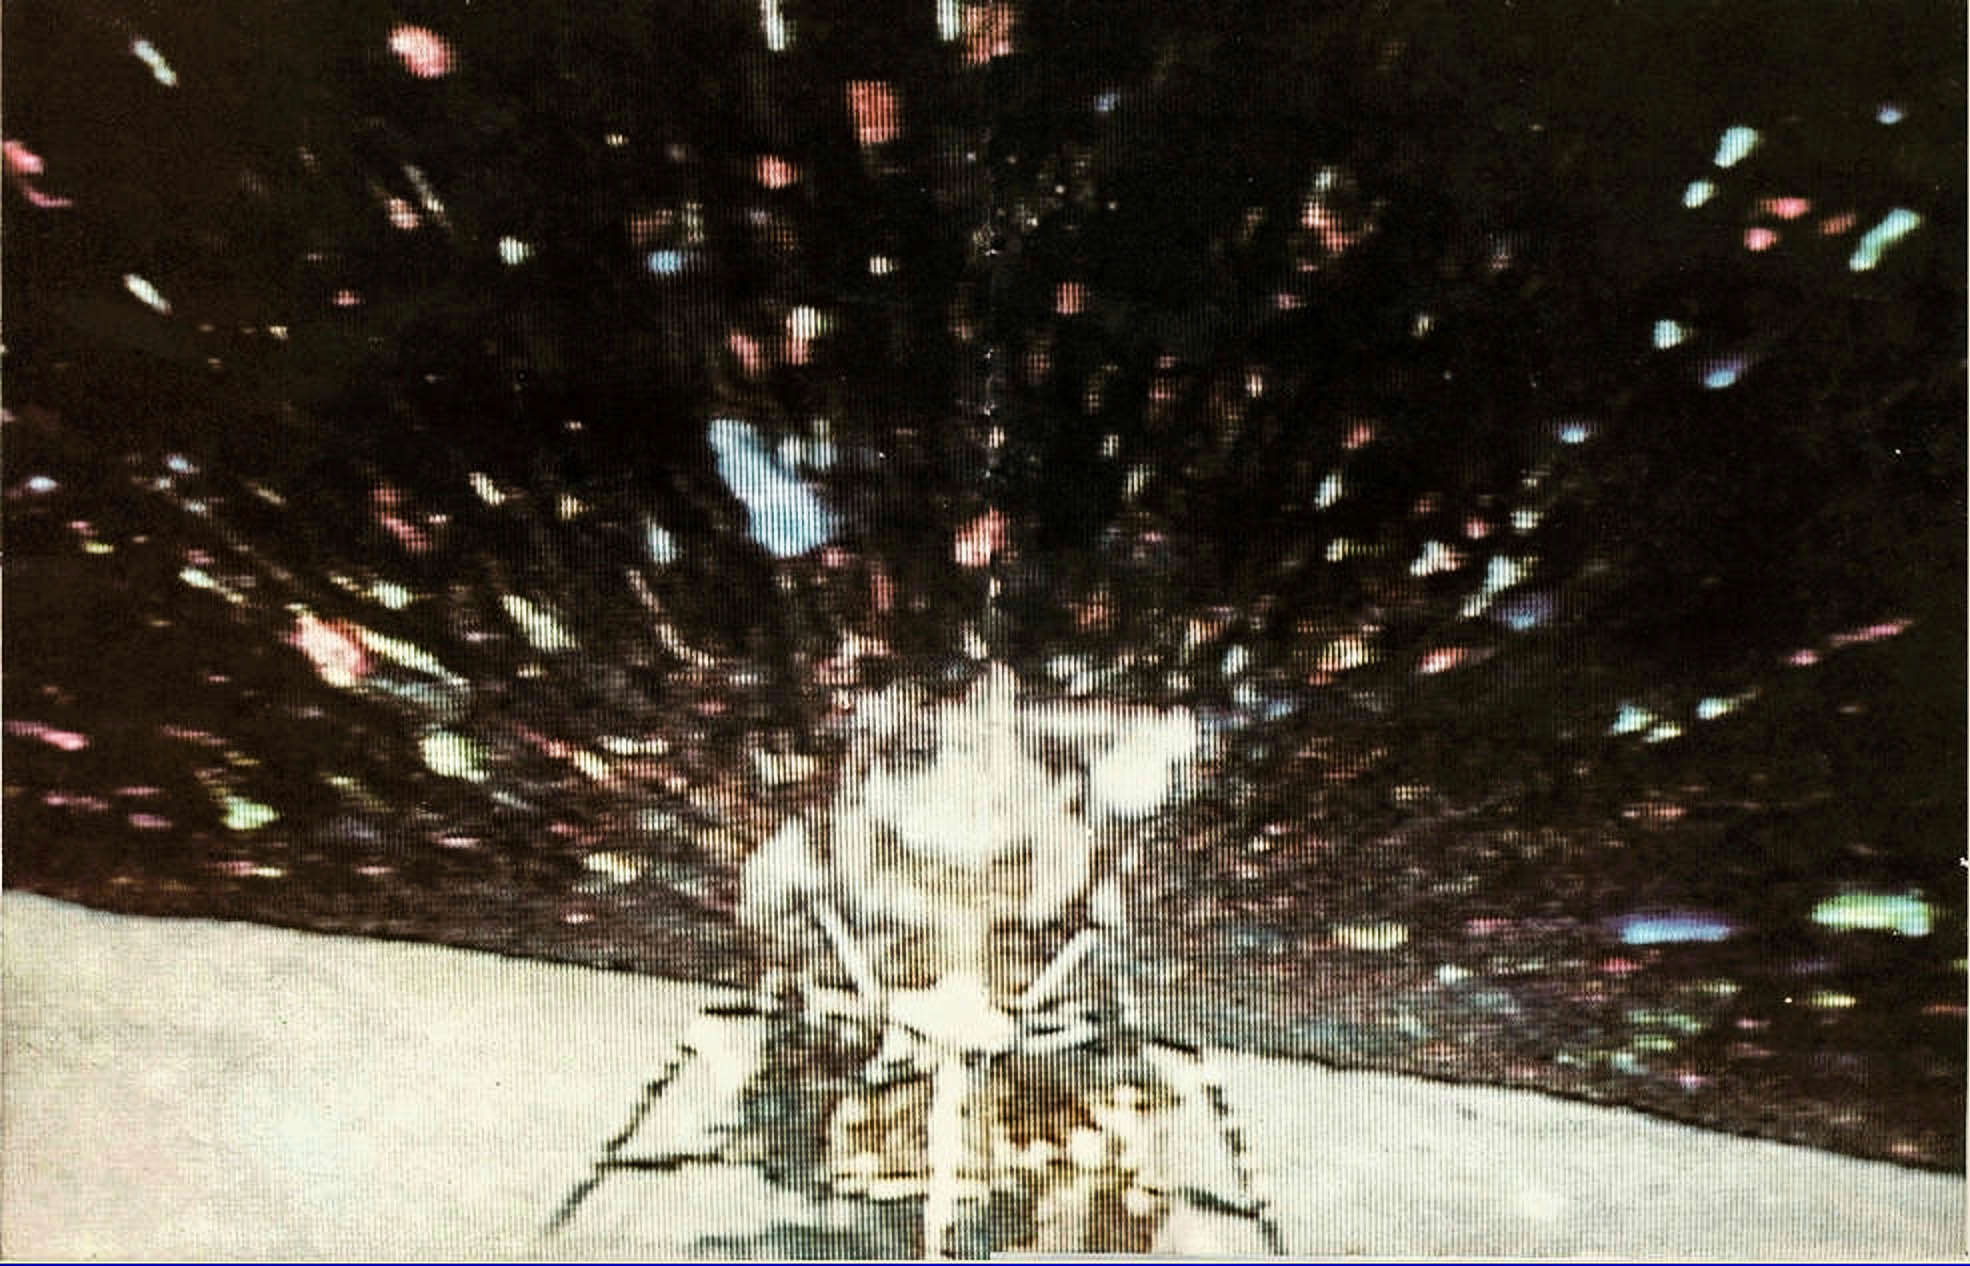 Apollo 11 vu par google earth - Page 3 1710